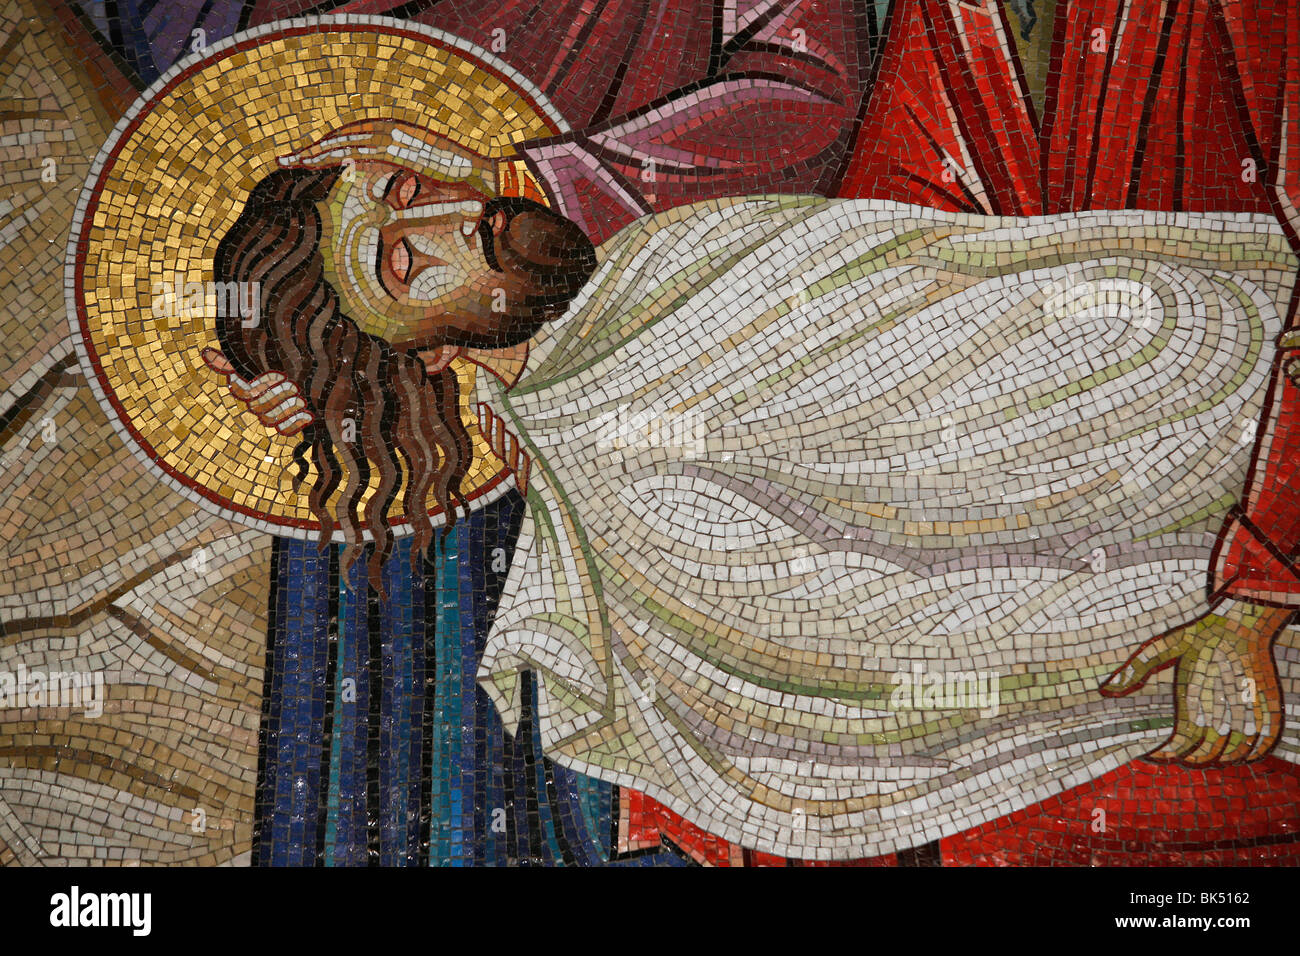 Mosaic of Christ's death at the Church of the Holy Sepulchre, Jerusalem, Israel, Middle East - Stock Image